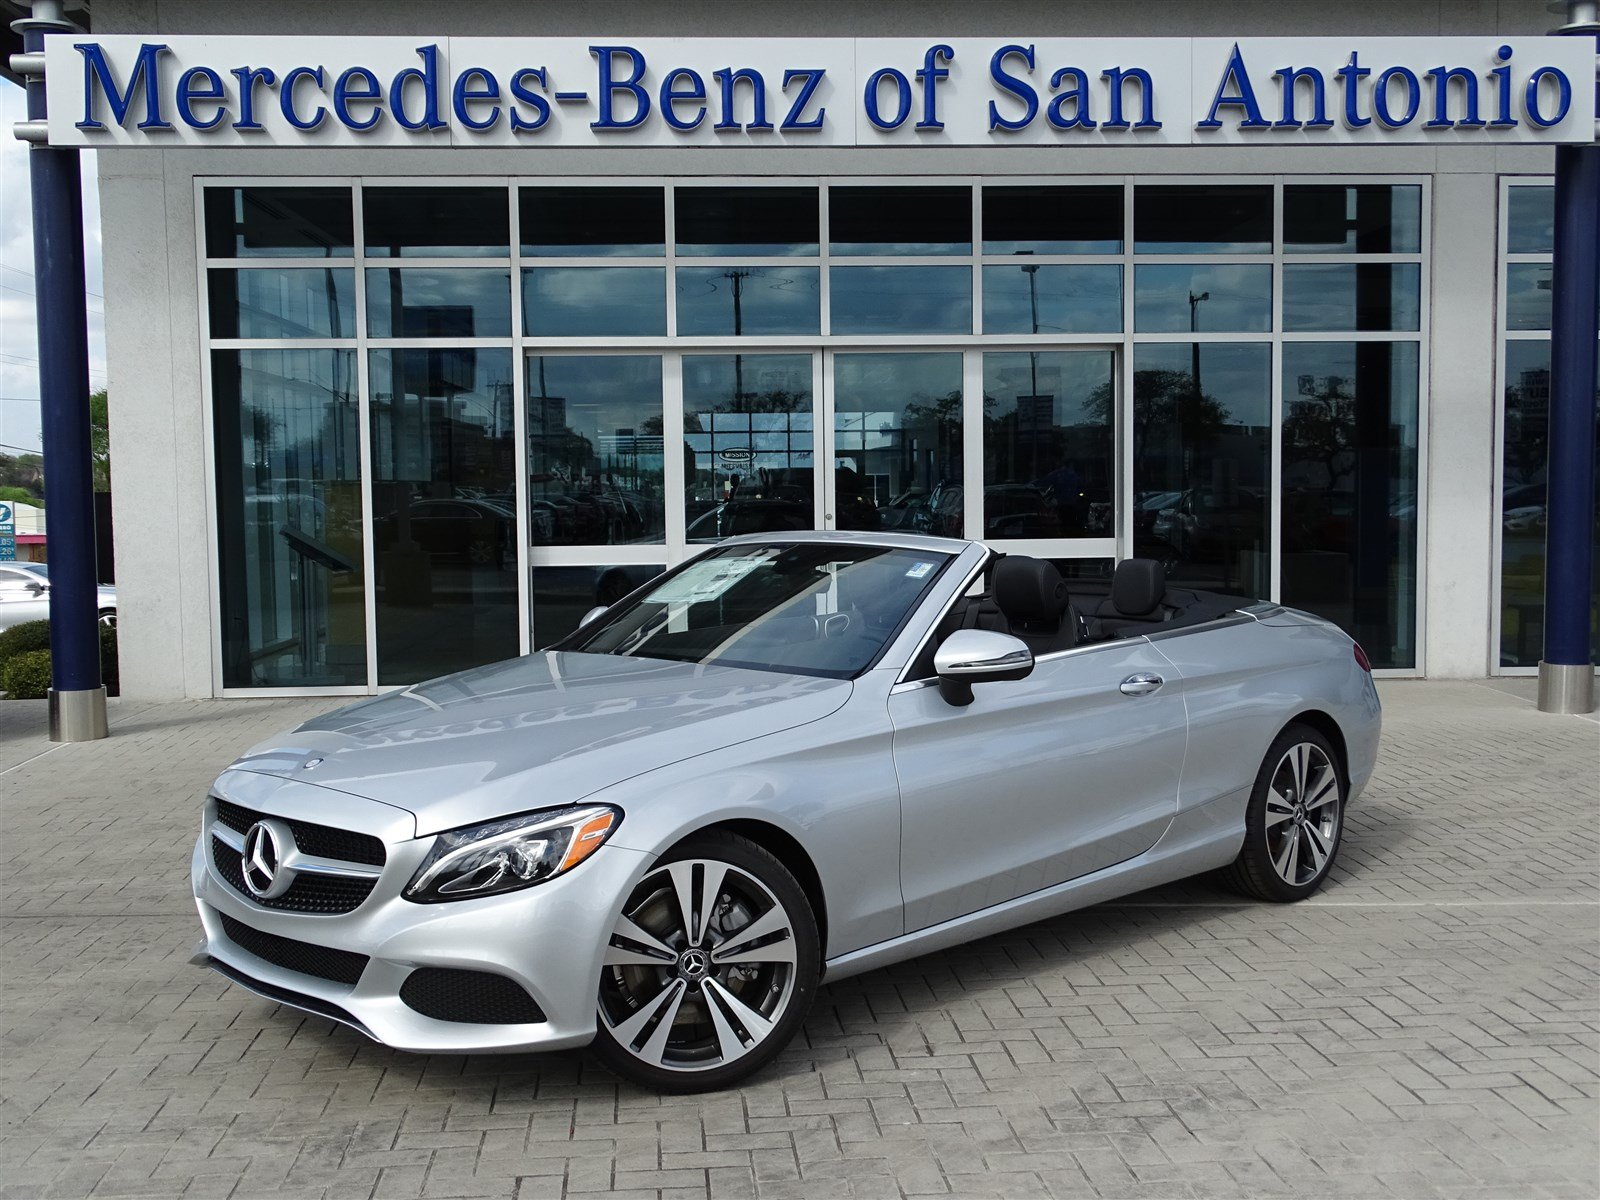 New 2017 mercedes benz c class c 300 cabriolet in san for San antonio mercedes benz dealers